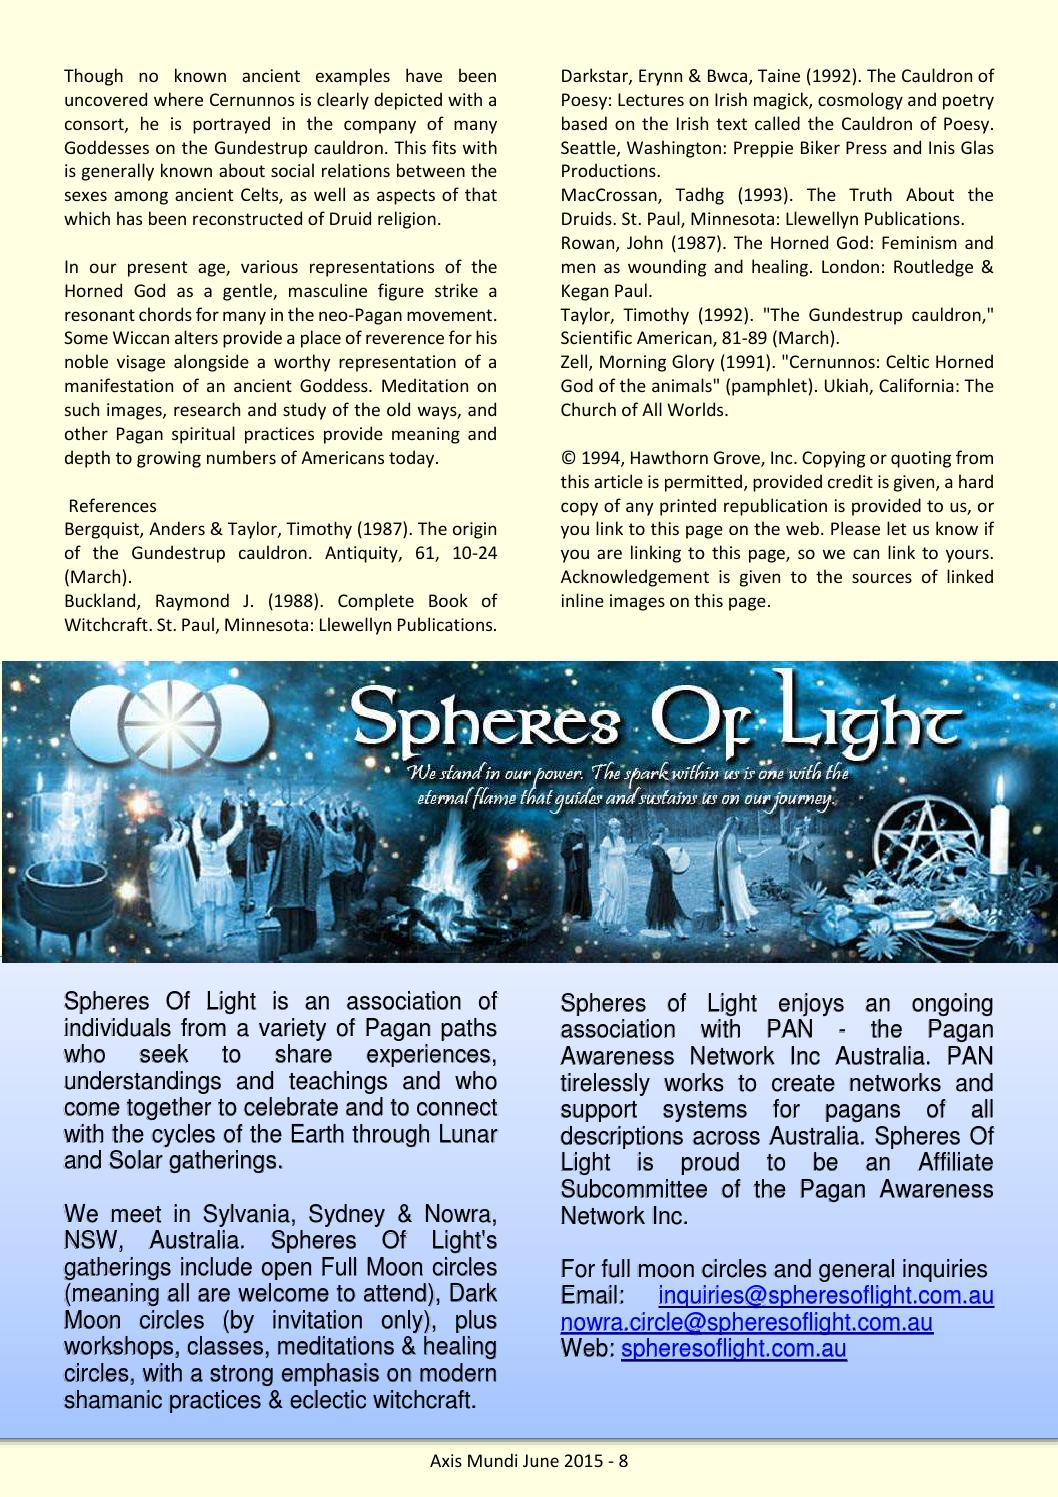 Axis Mundi Winter Issue 59 by Spheres Of Light (SOL